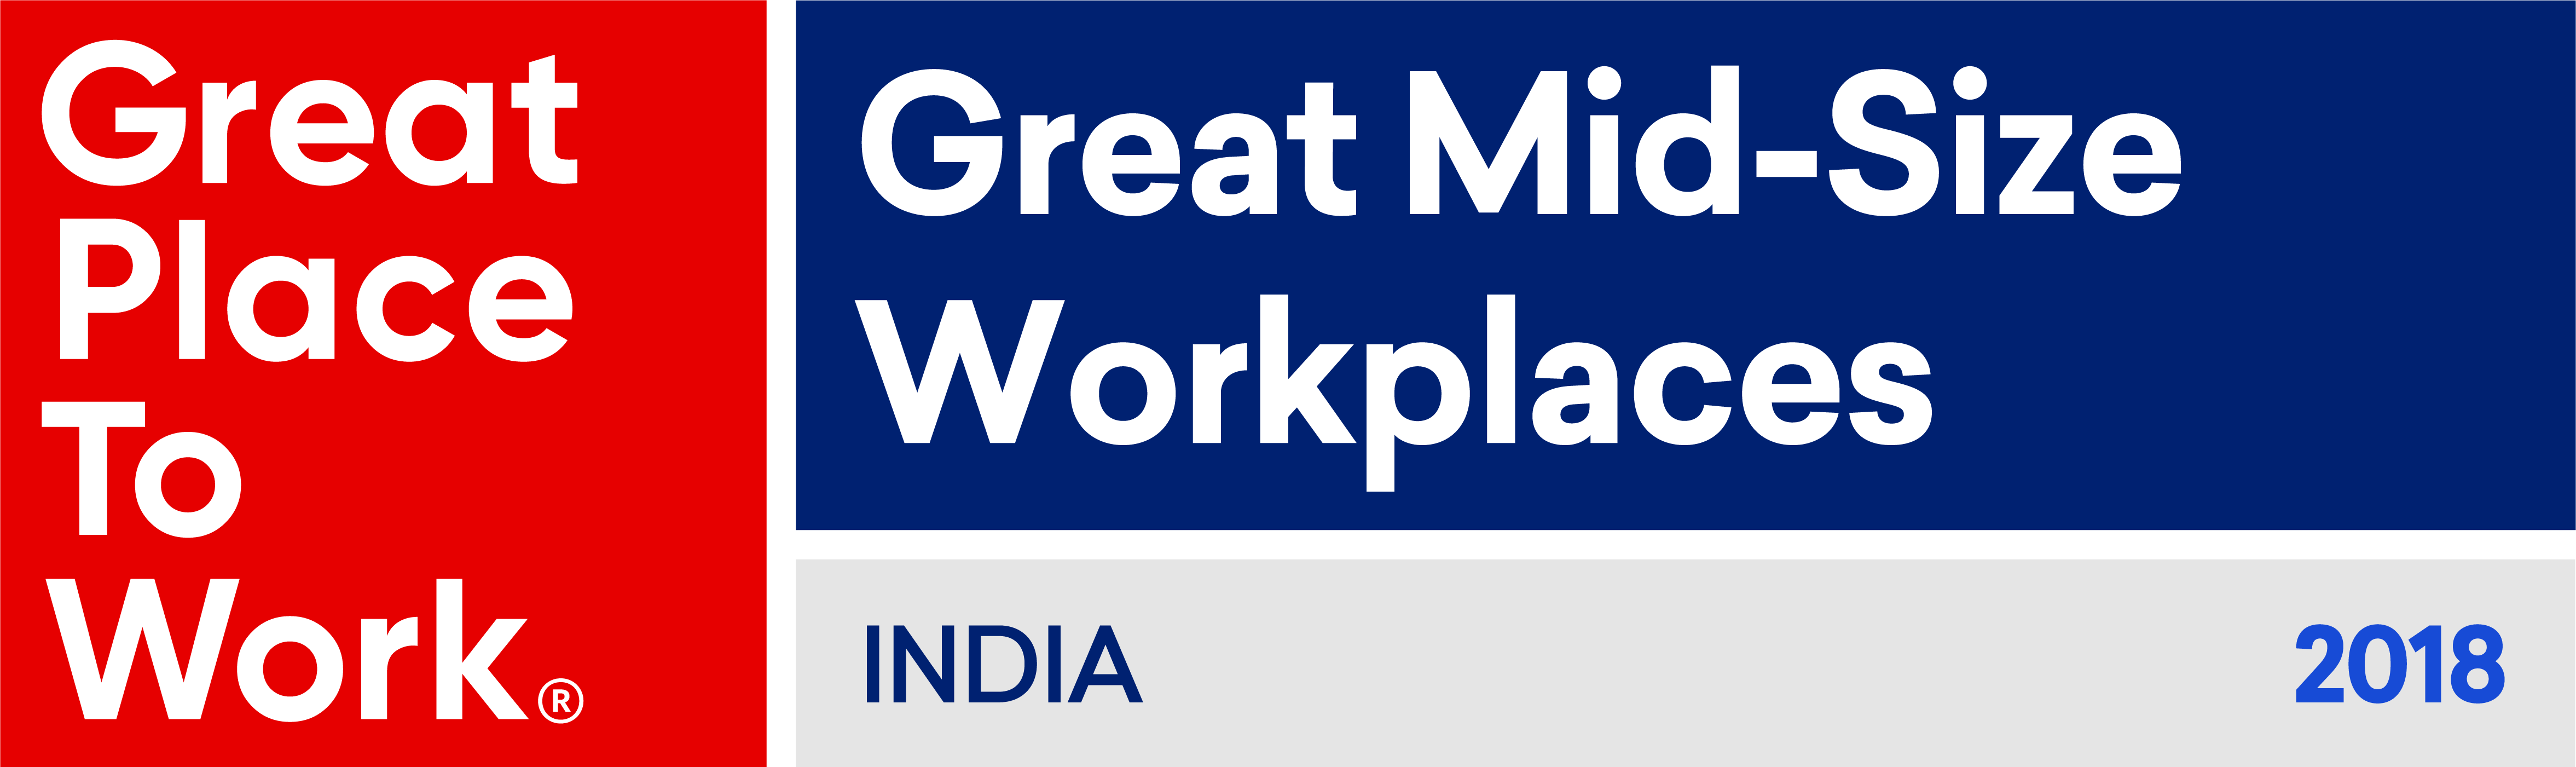 TO THE NEW in the Top 50 List of India 's Great Mid-Size Companies, 2018 by Great Place to Work®